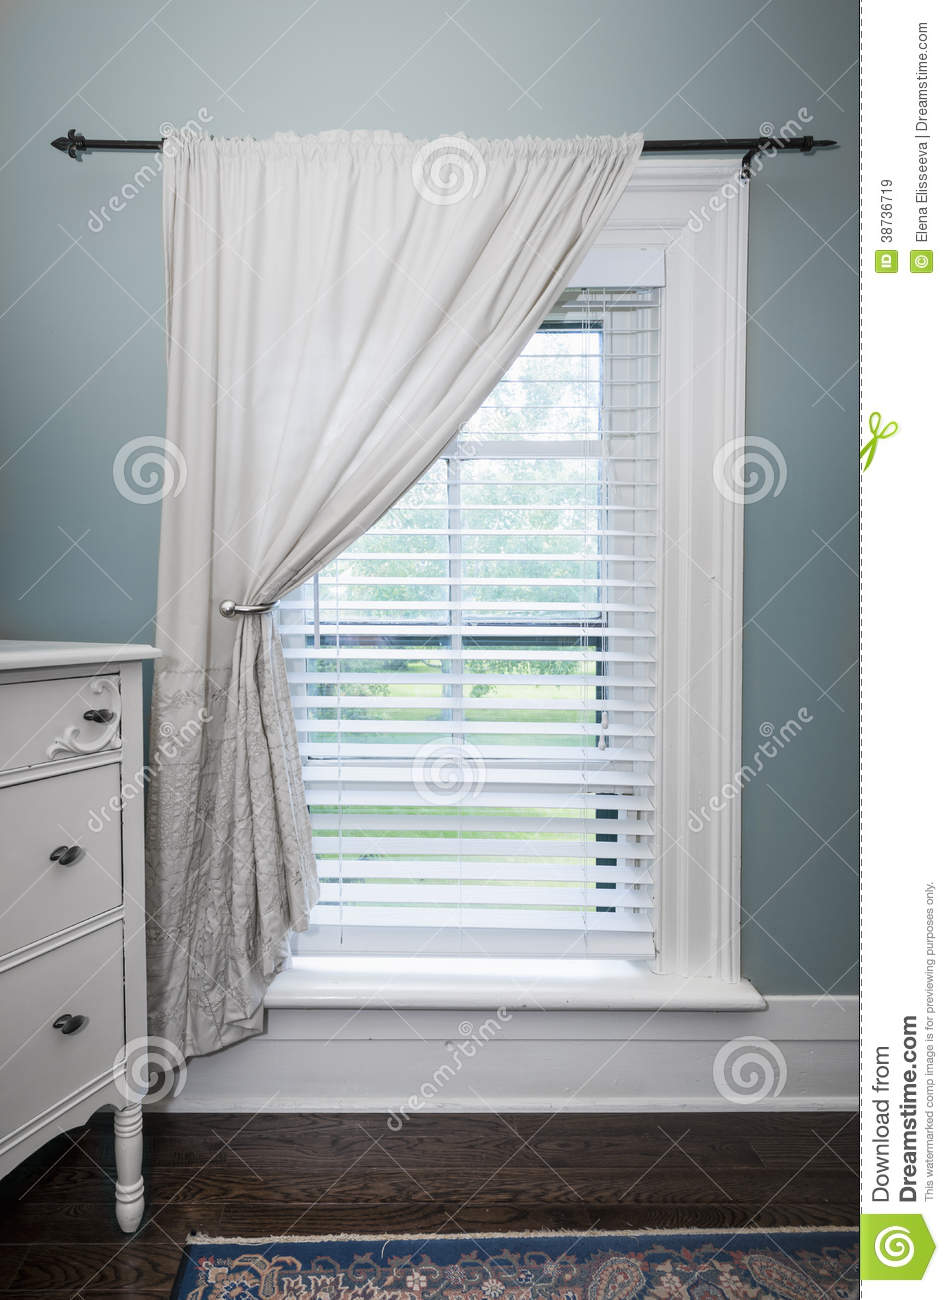 Window with blinds and curtain stock image image 38736719 Curtains and blinds